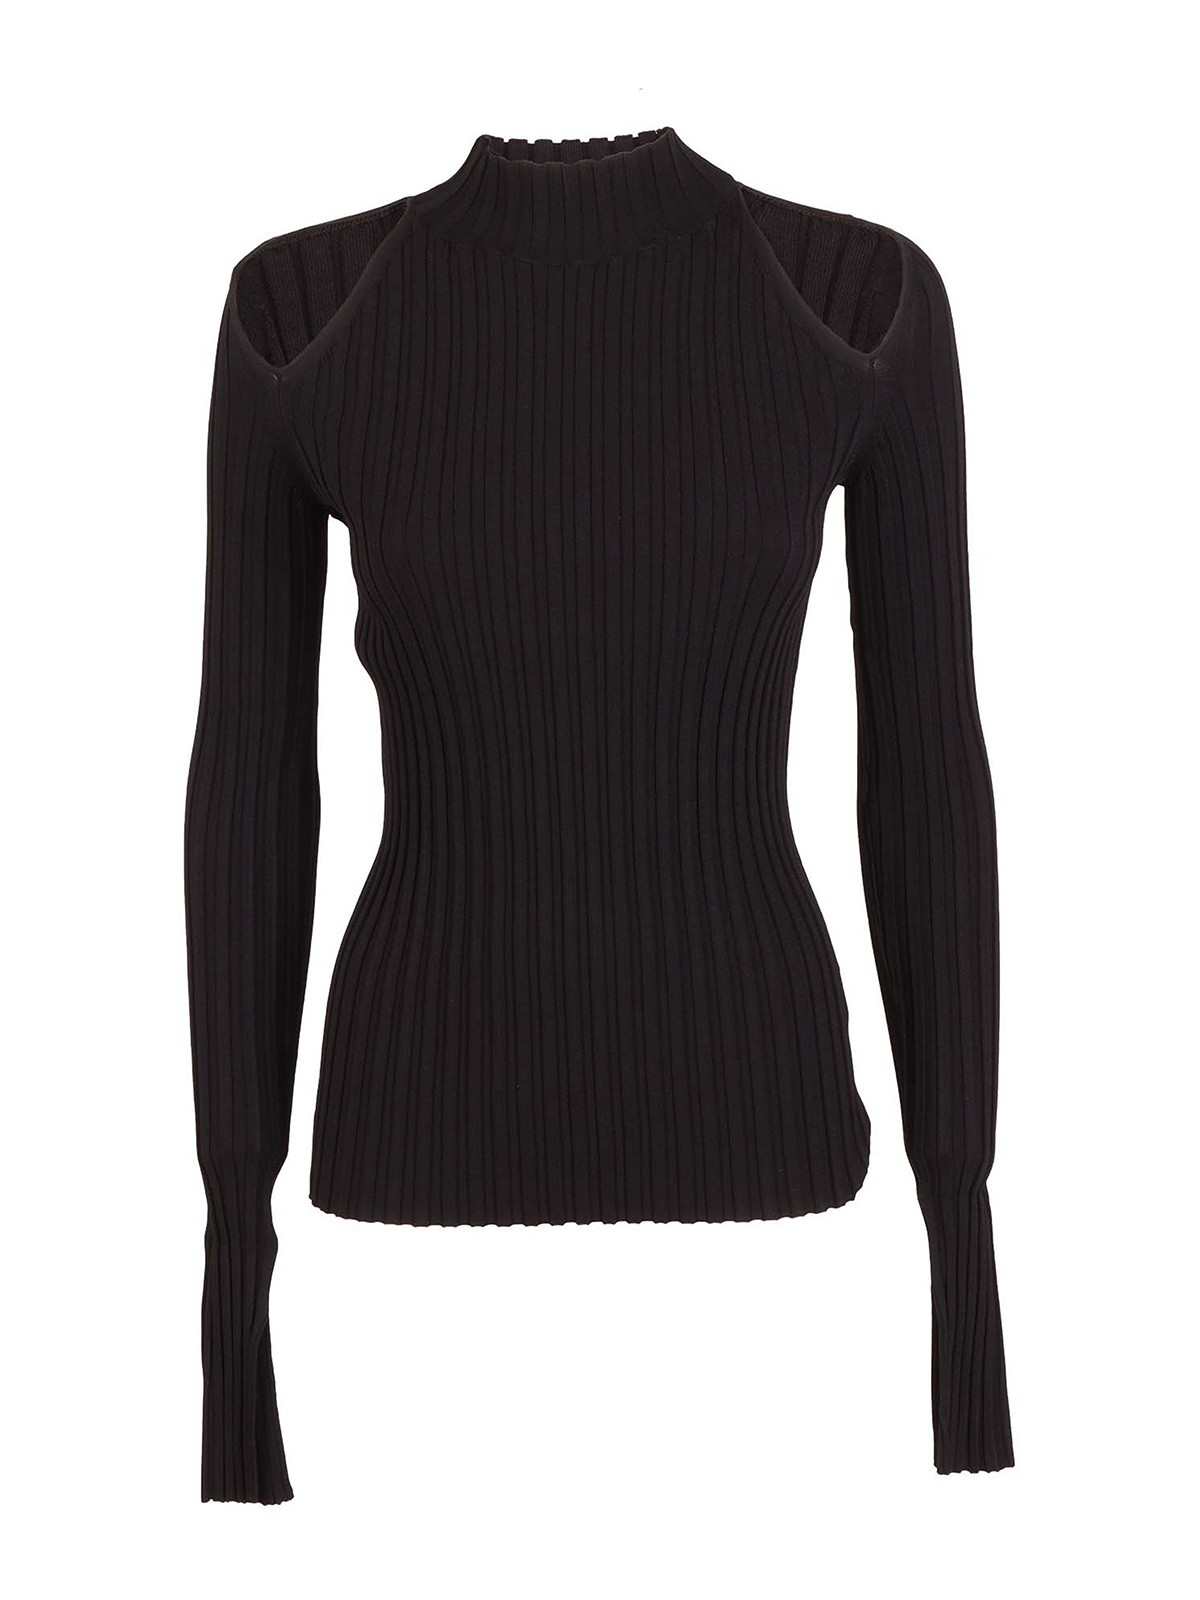 Helmut Lang CUT OUT TURTLENECK